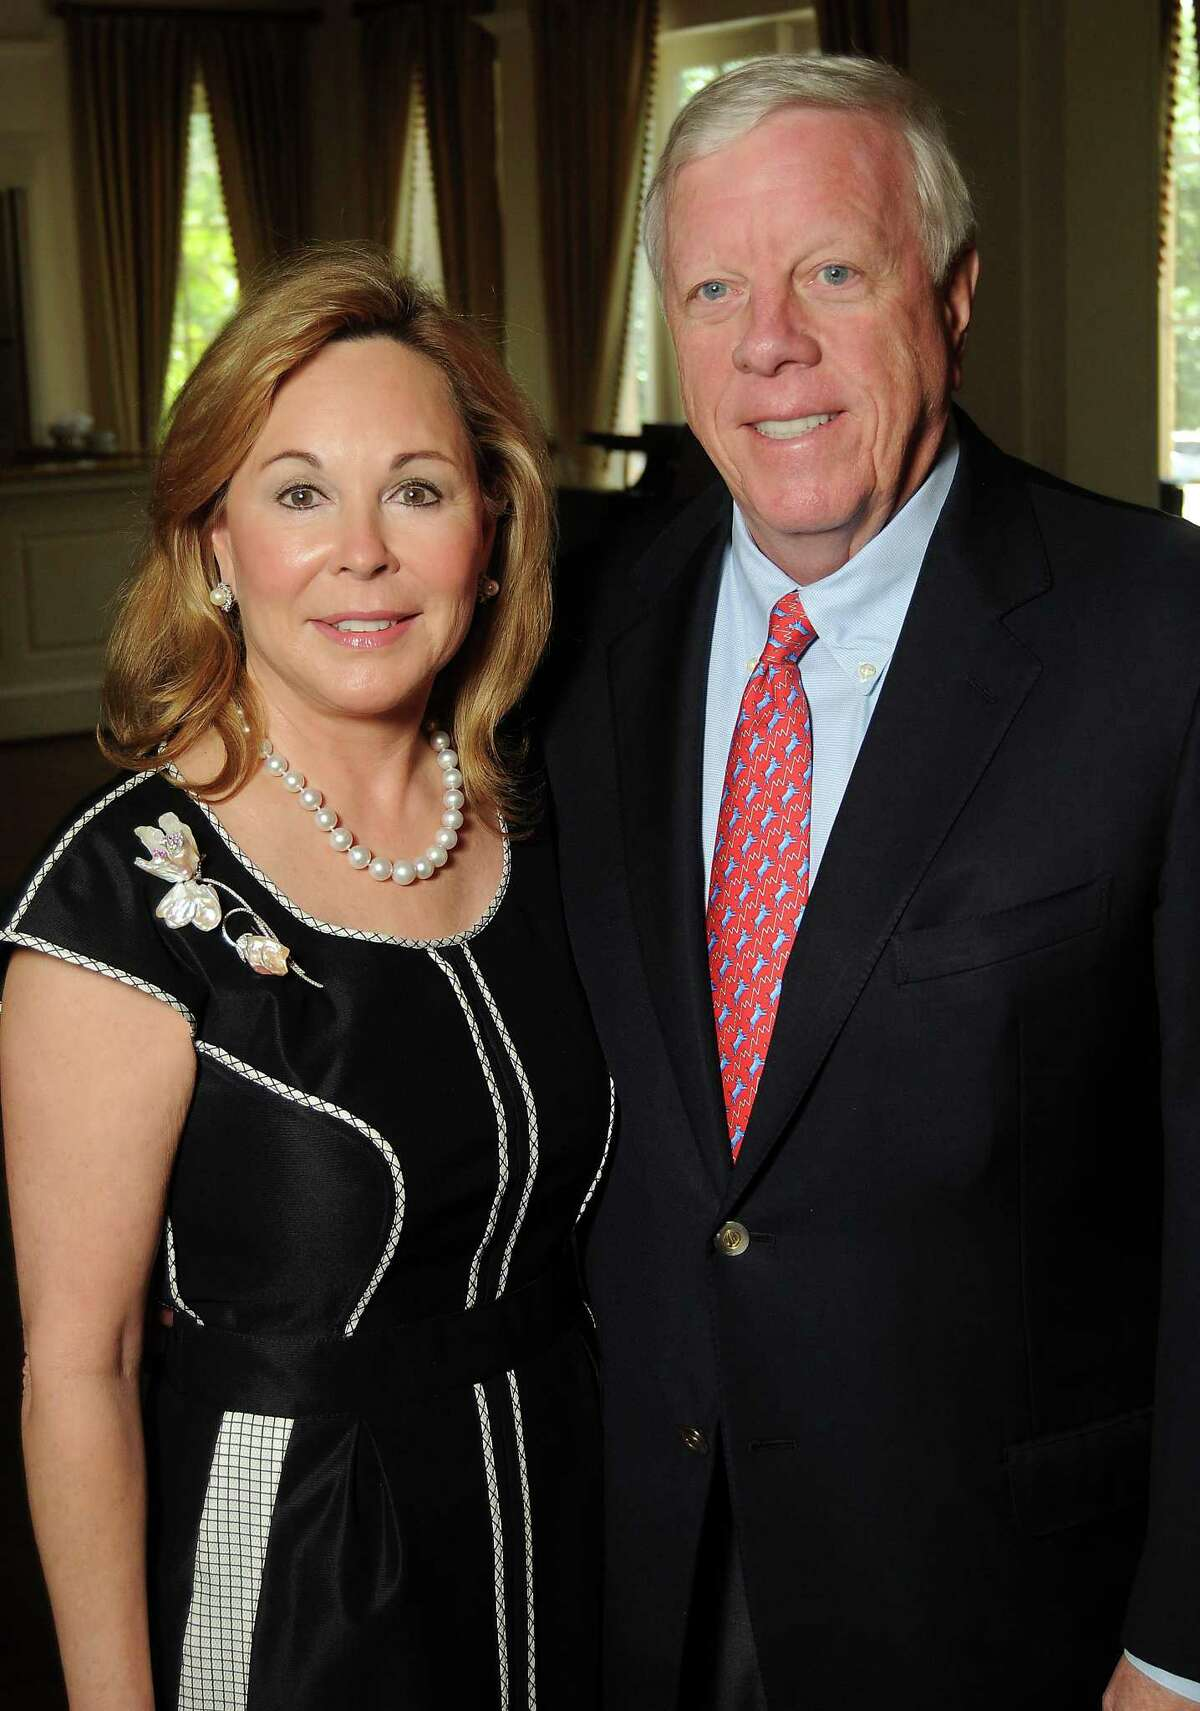 Richard Kinder, shown with wife Nancy in 2013, will step down as Kinder Morgan CEO in June, but remain as executive chairman of the pipeline giant. (Dave Rossman photo)